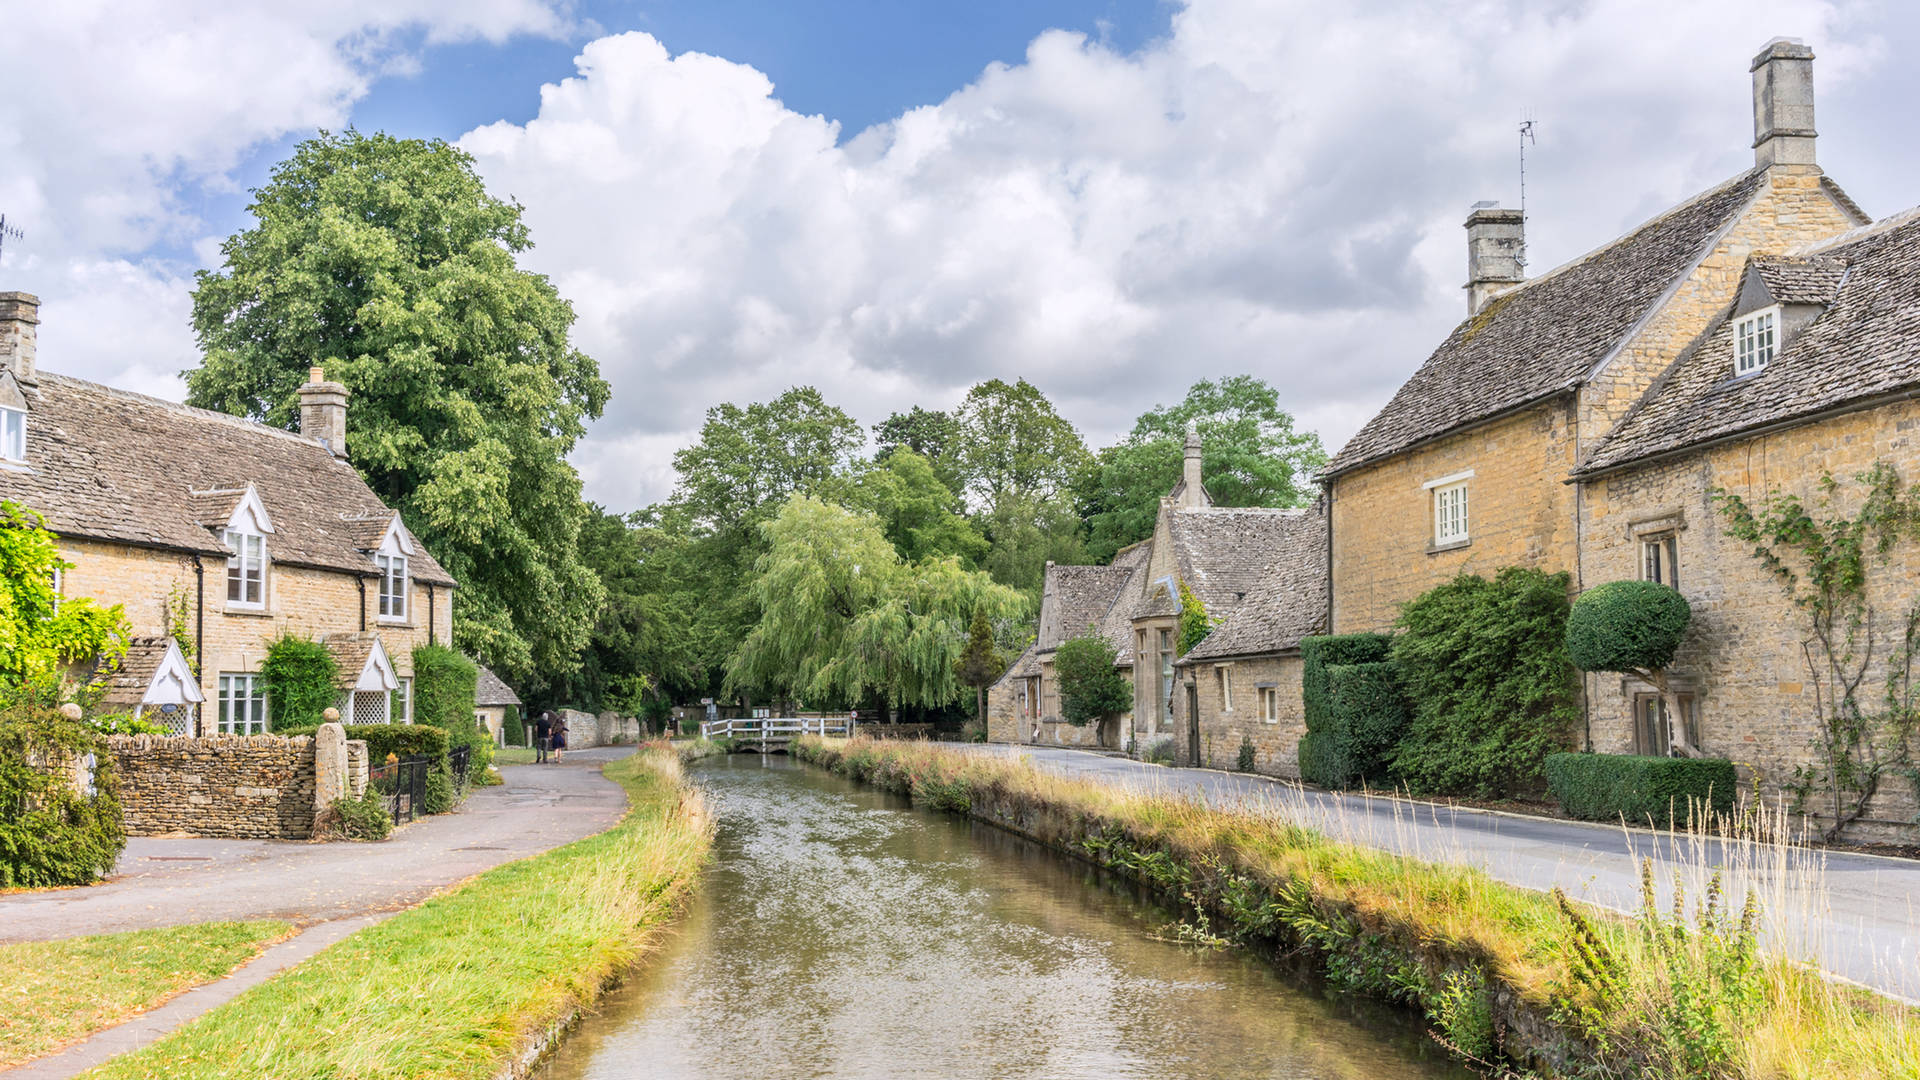 Cotswolds stone houses and river